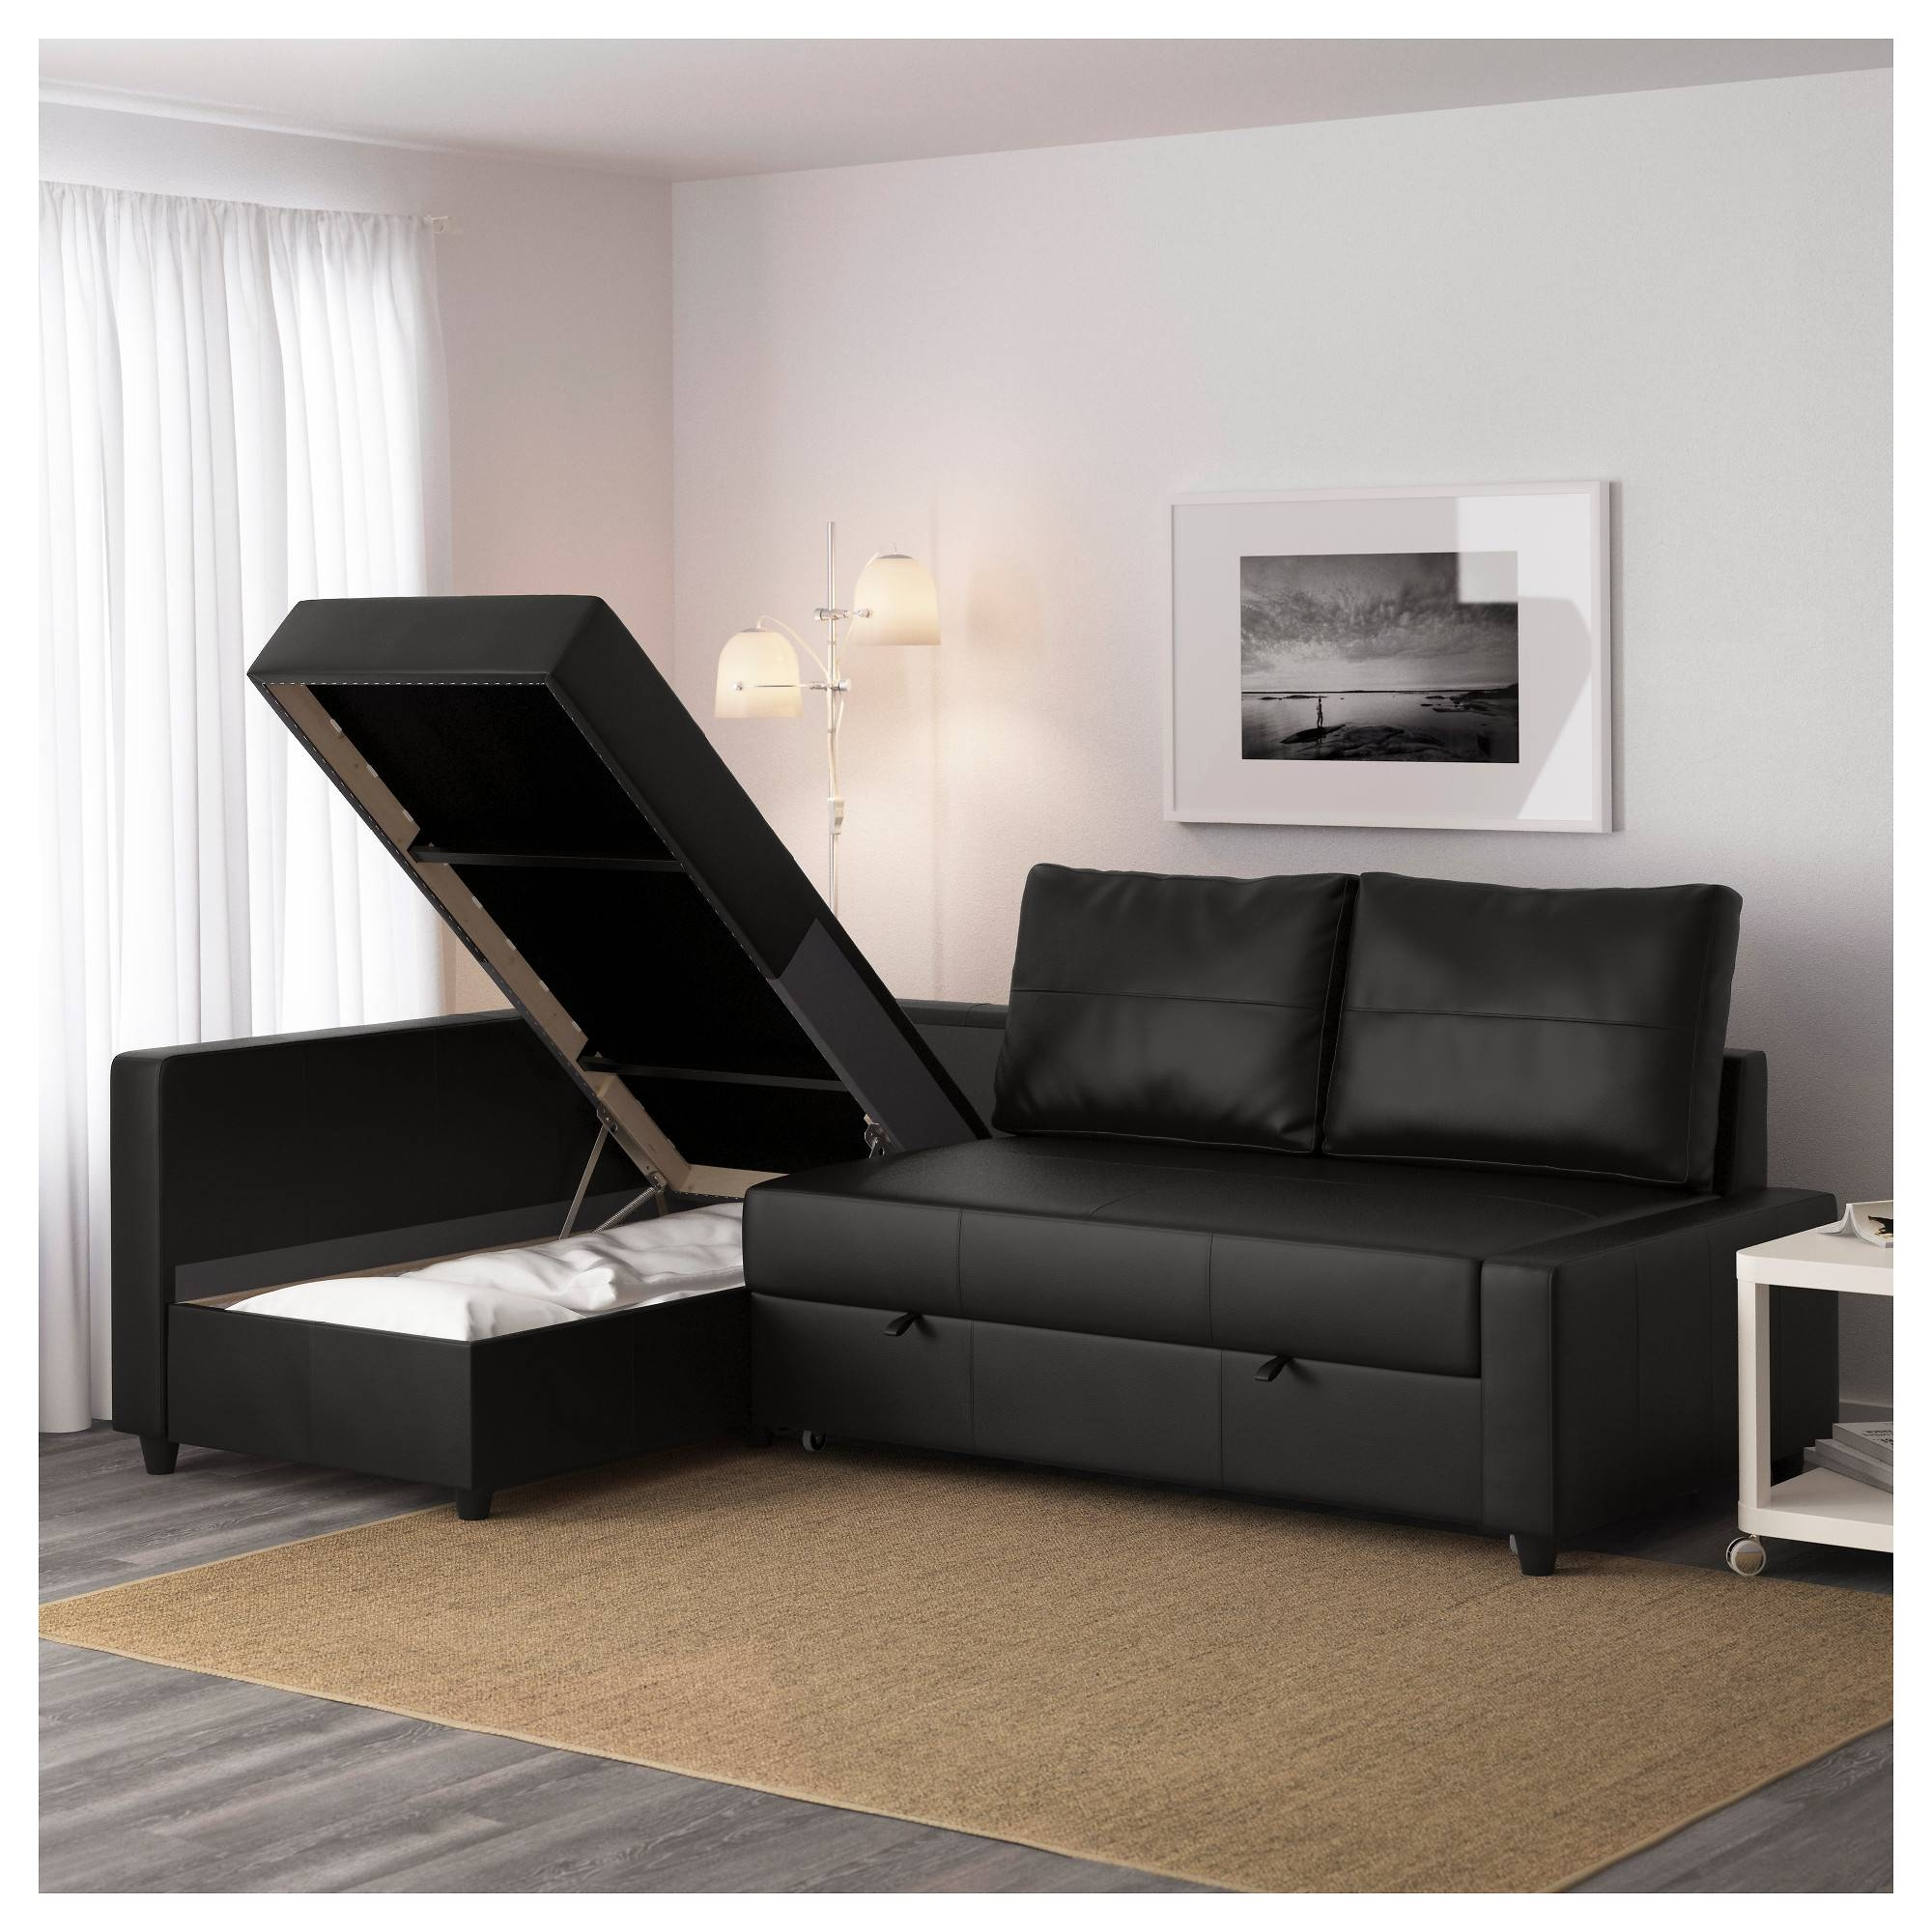 Friheten Sleeper Sectional,3 Seat W/storage - Skiftebo Dark Gray regarding Ikea Storage Sofa Bed (Image 10 of 25)